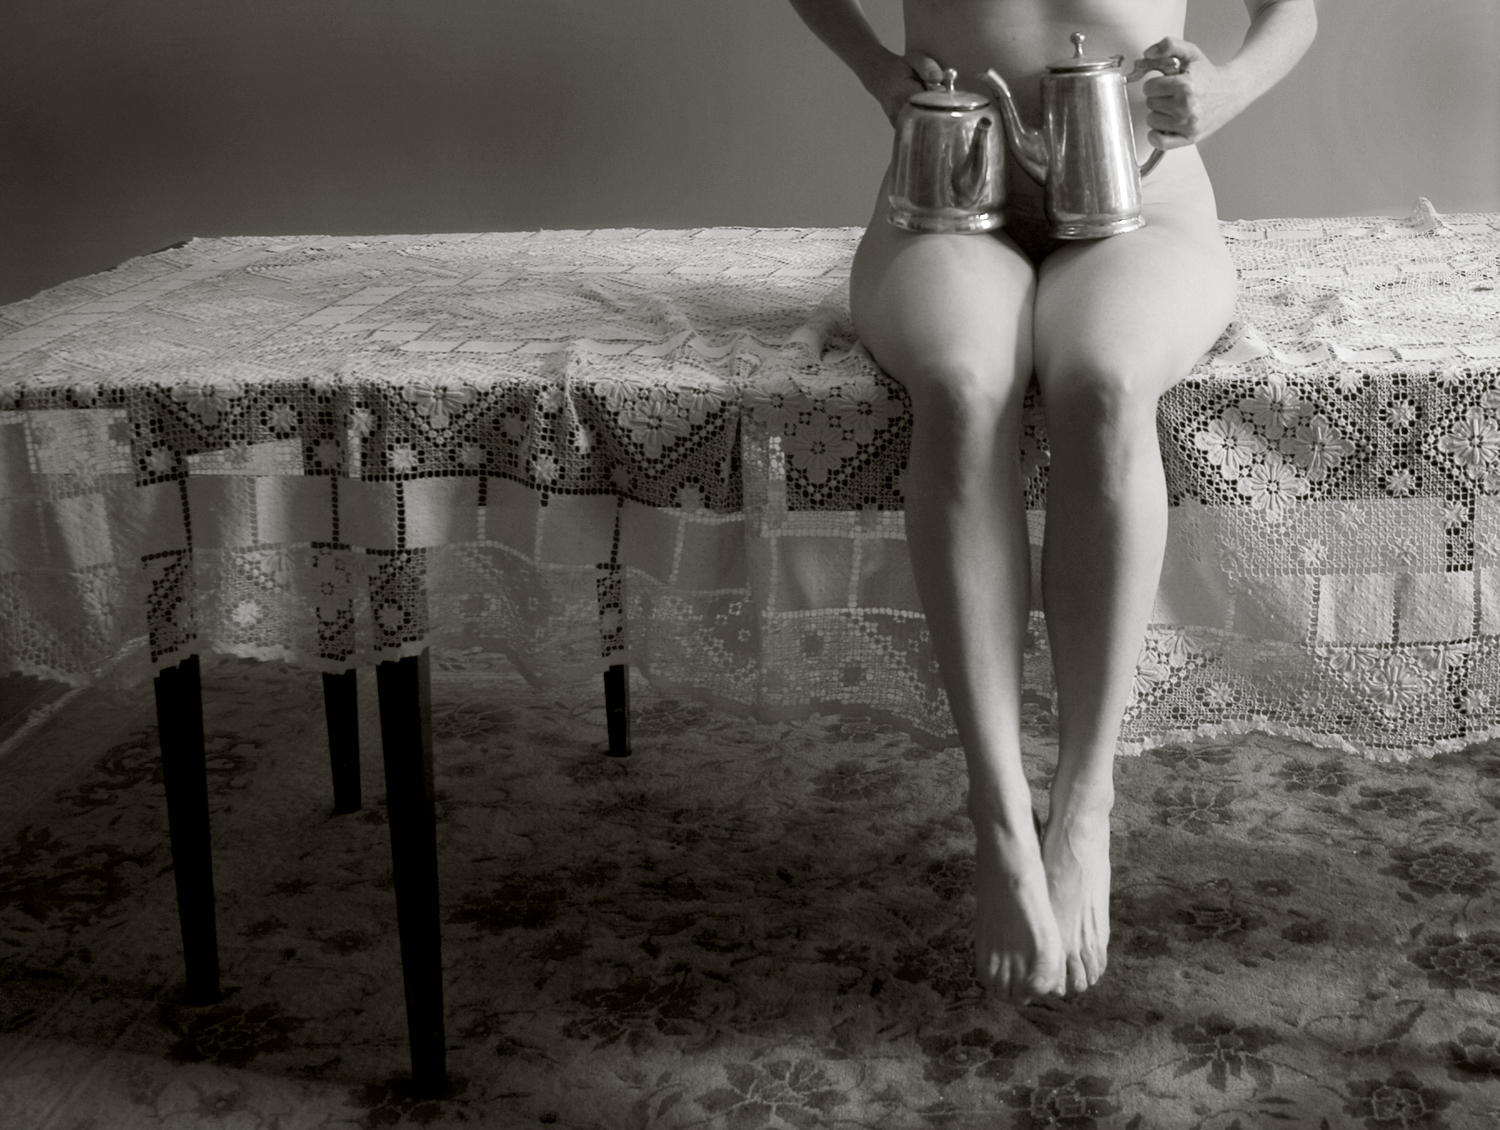 On The Table by © Chehalis Hegner